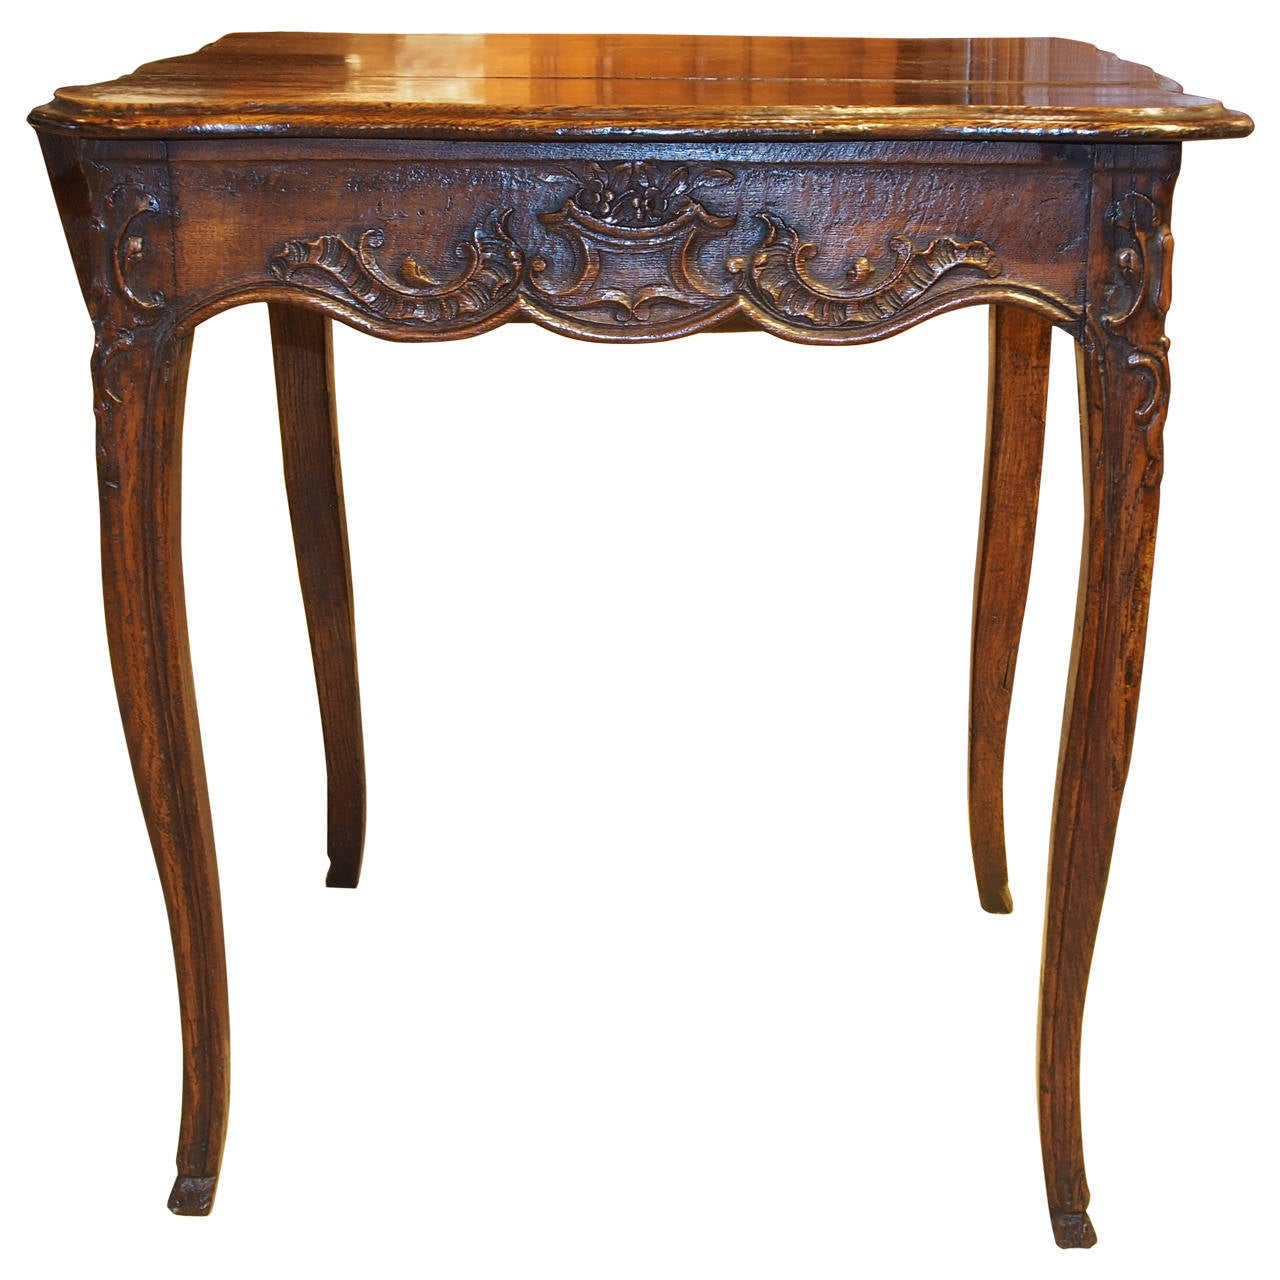 Louis xv oak table at 1stdibs - Table louis xv ...